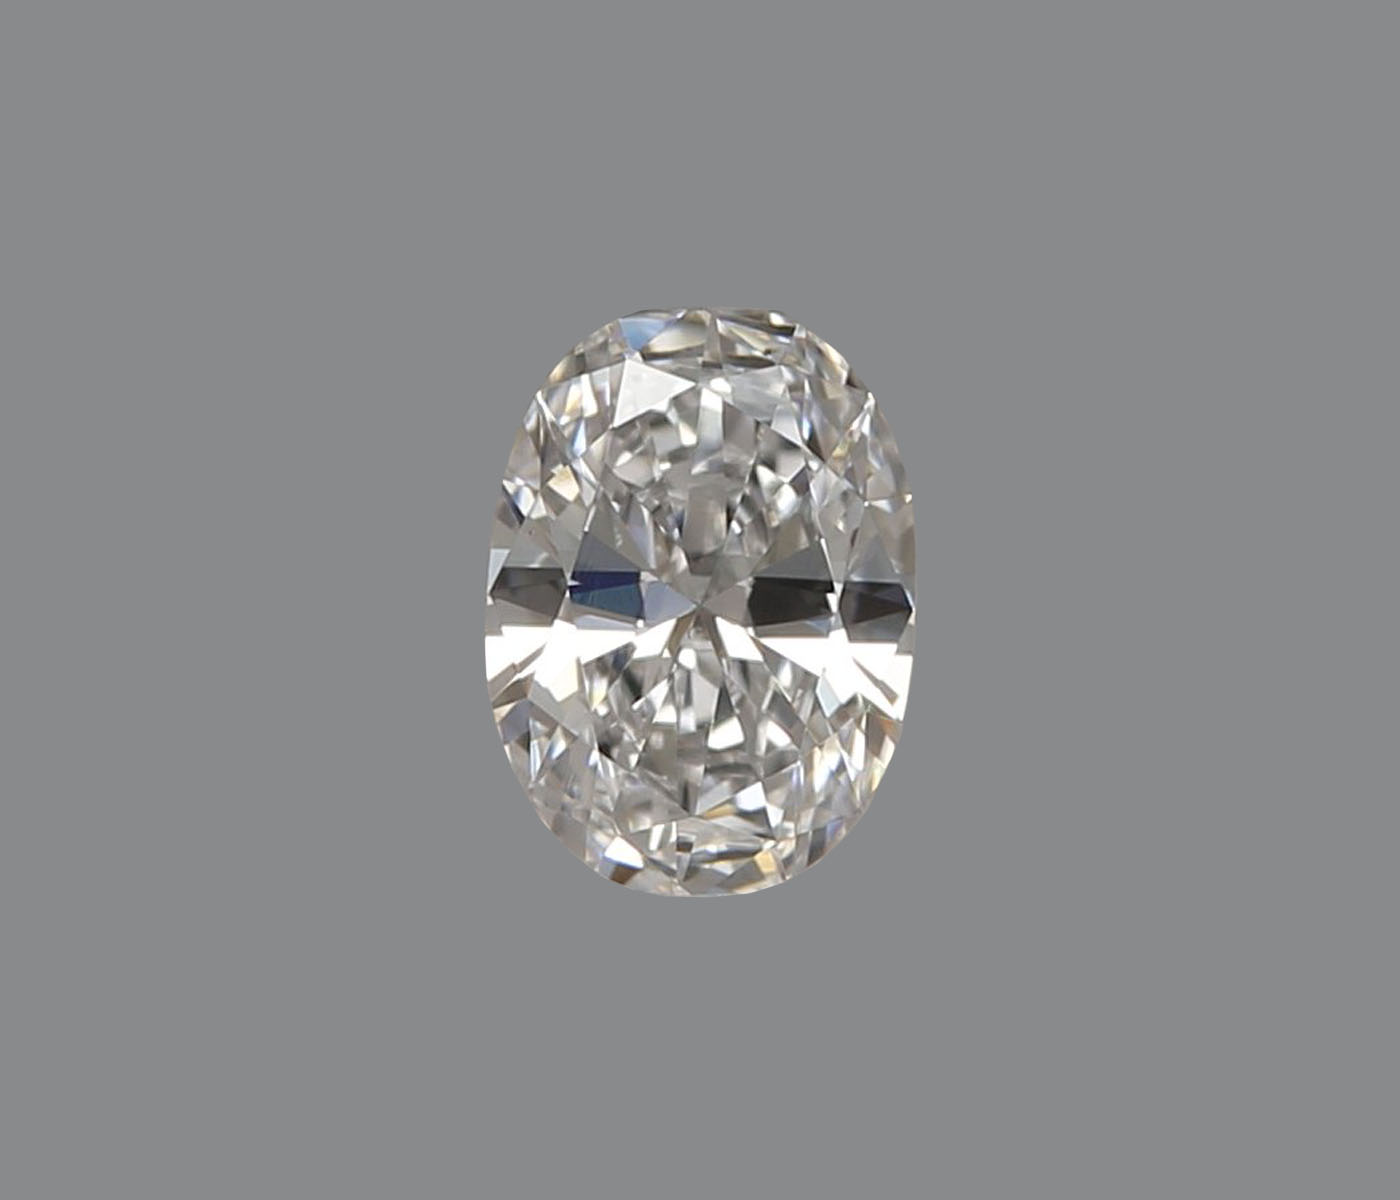 american d color americanstardiamond diamond star the